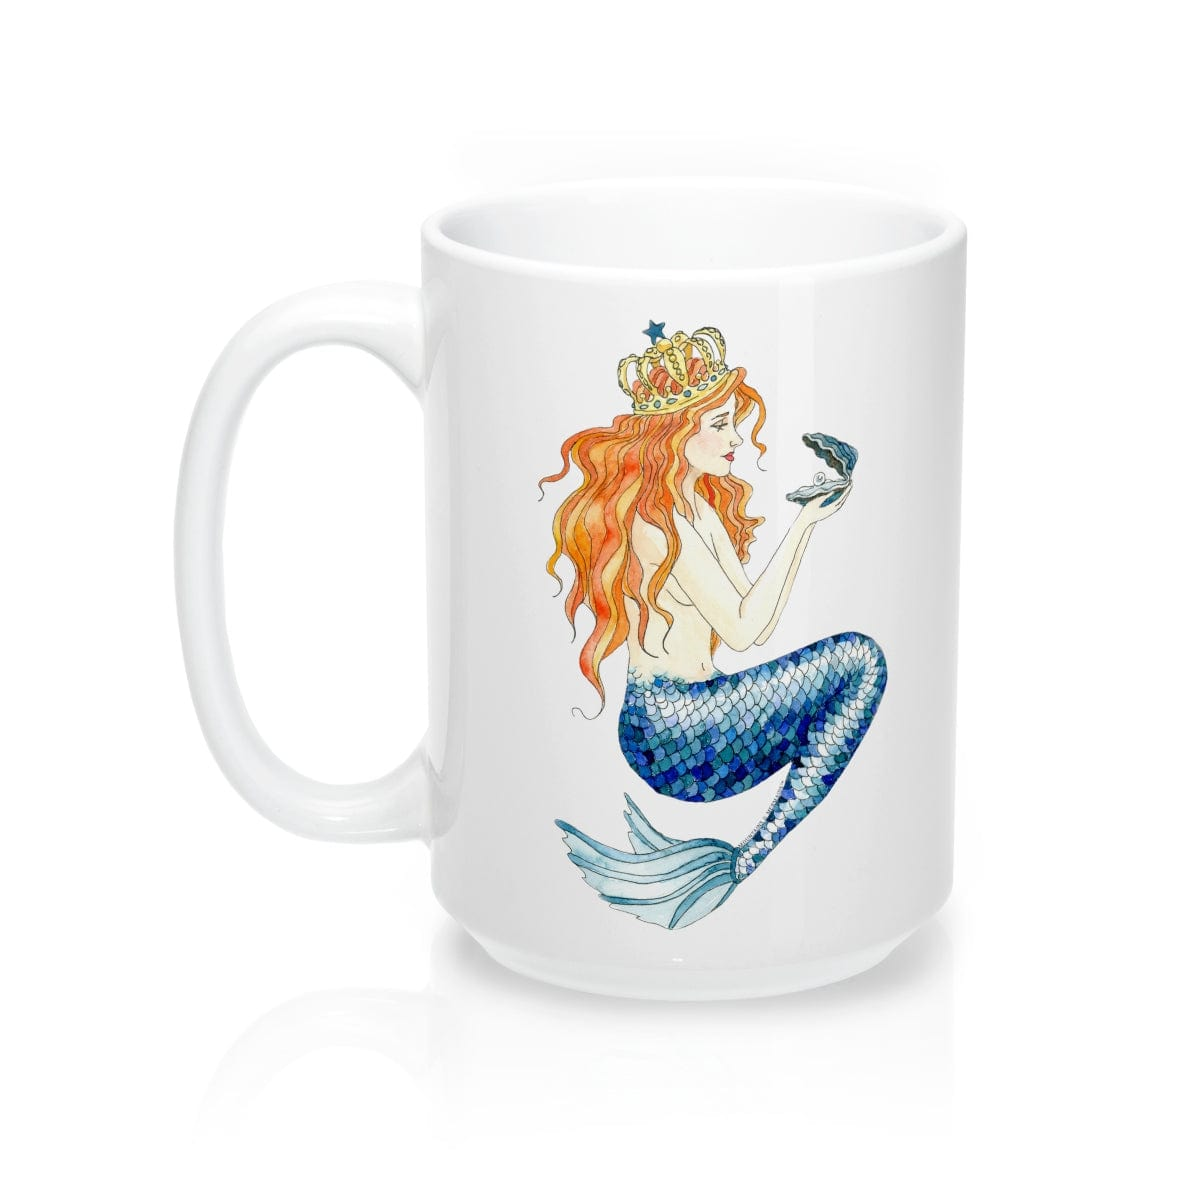 Pearl Mermaid Coffee Mug - Mountains & Mermaids